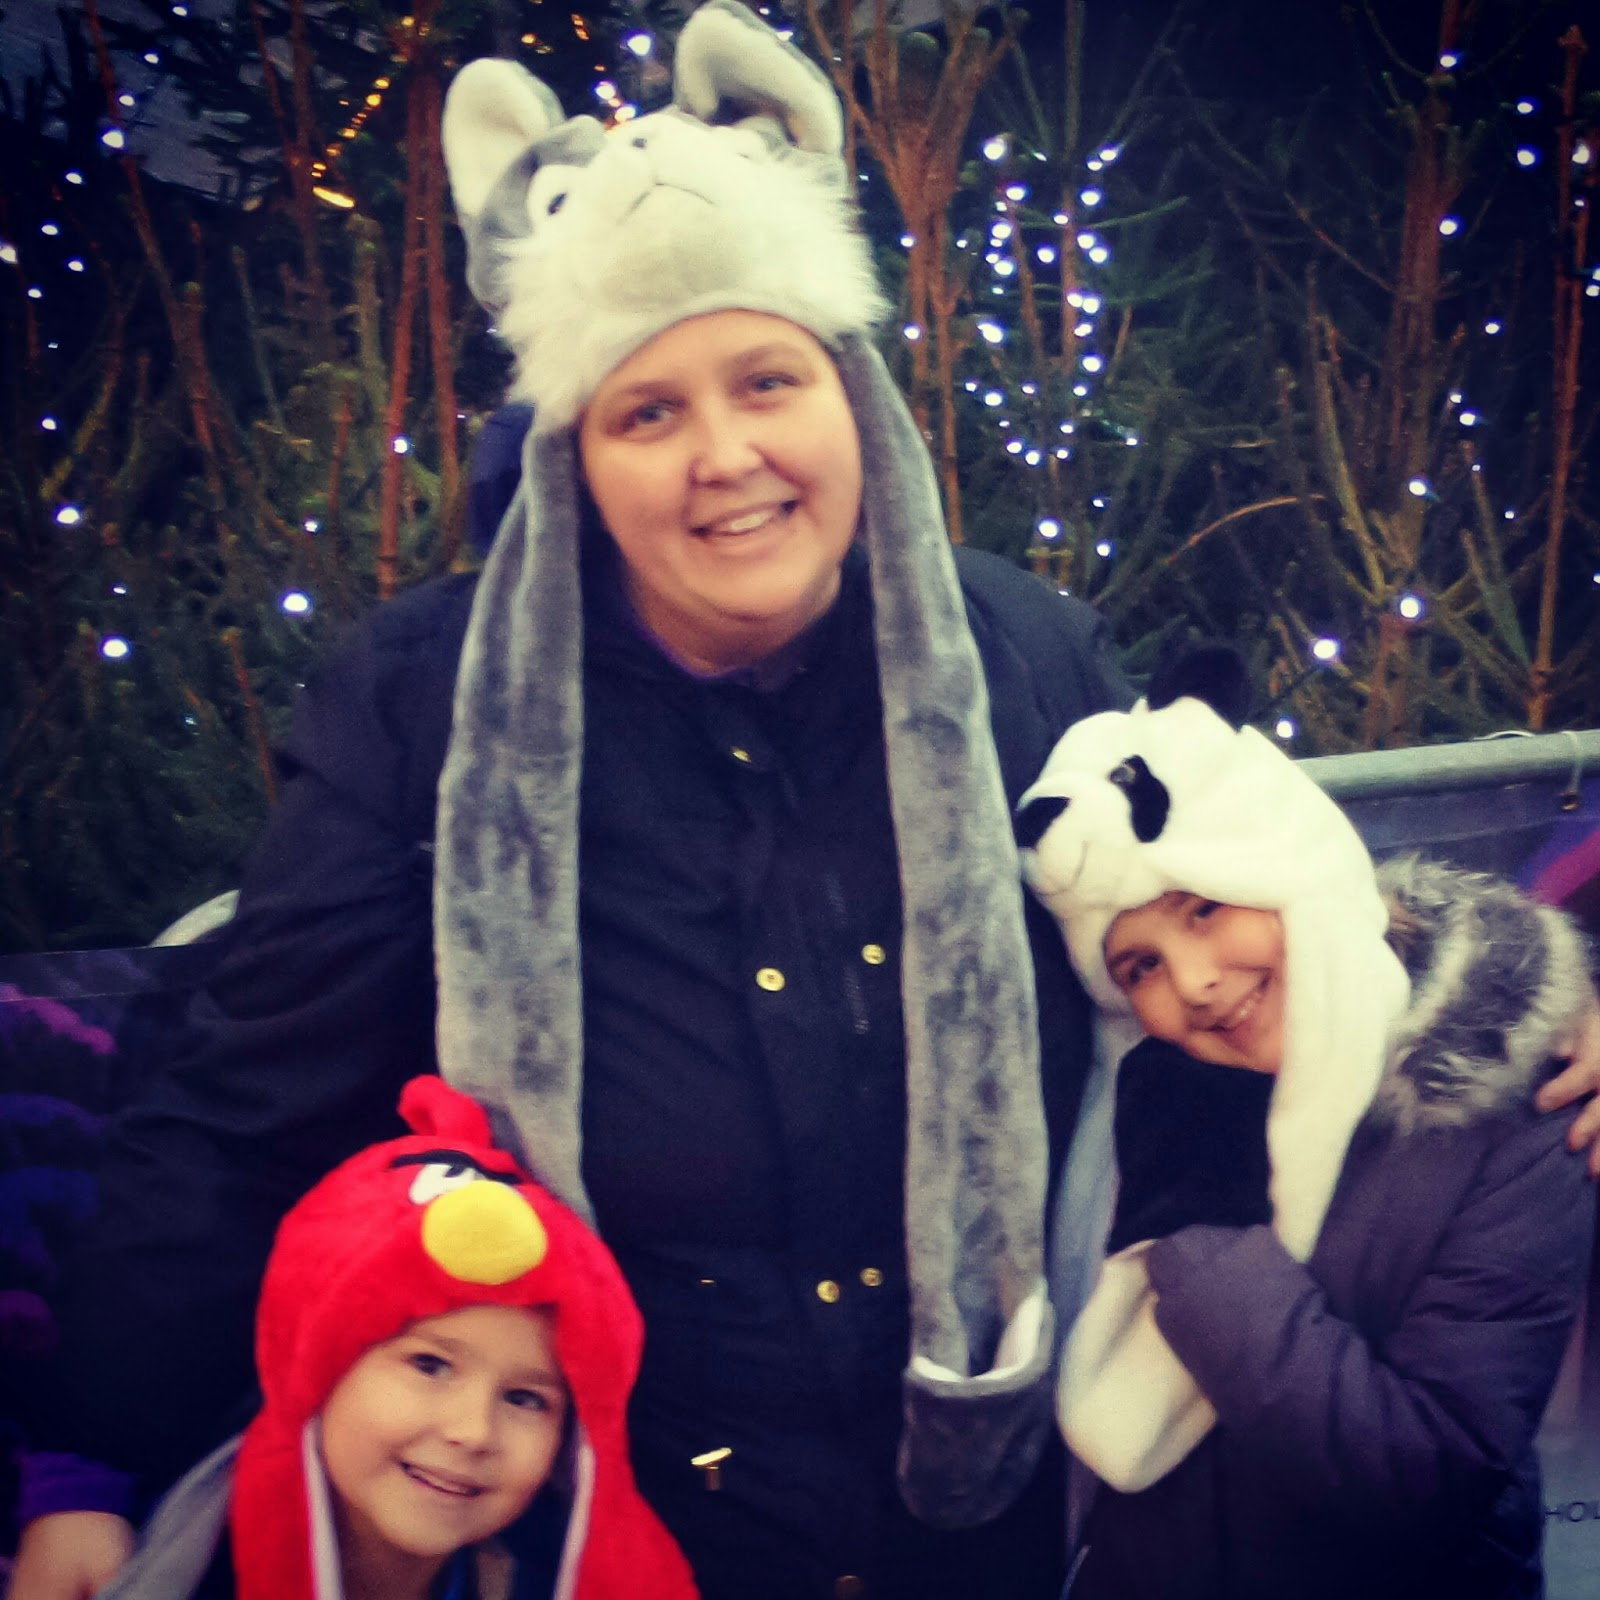 PippaD, Top Ender and Big Boy with new Winter Hats